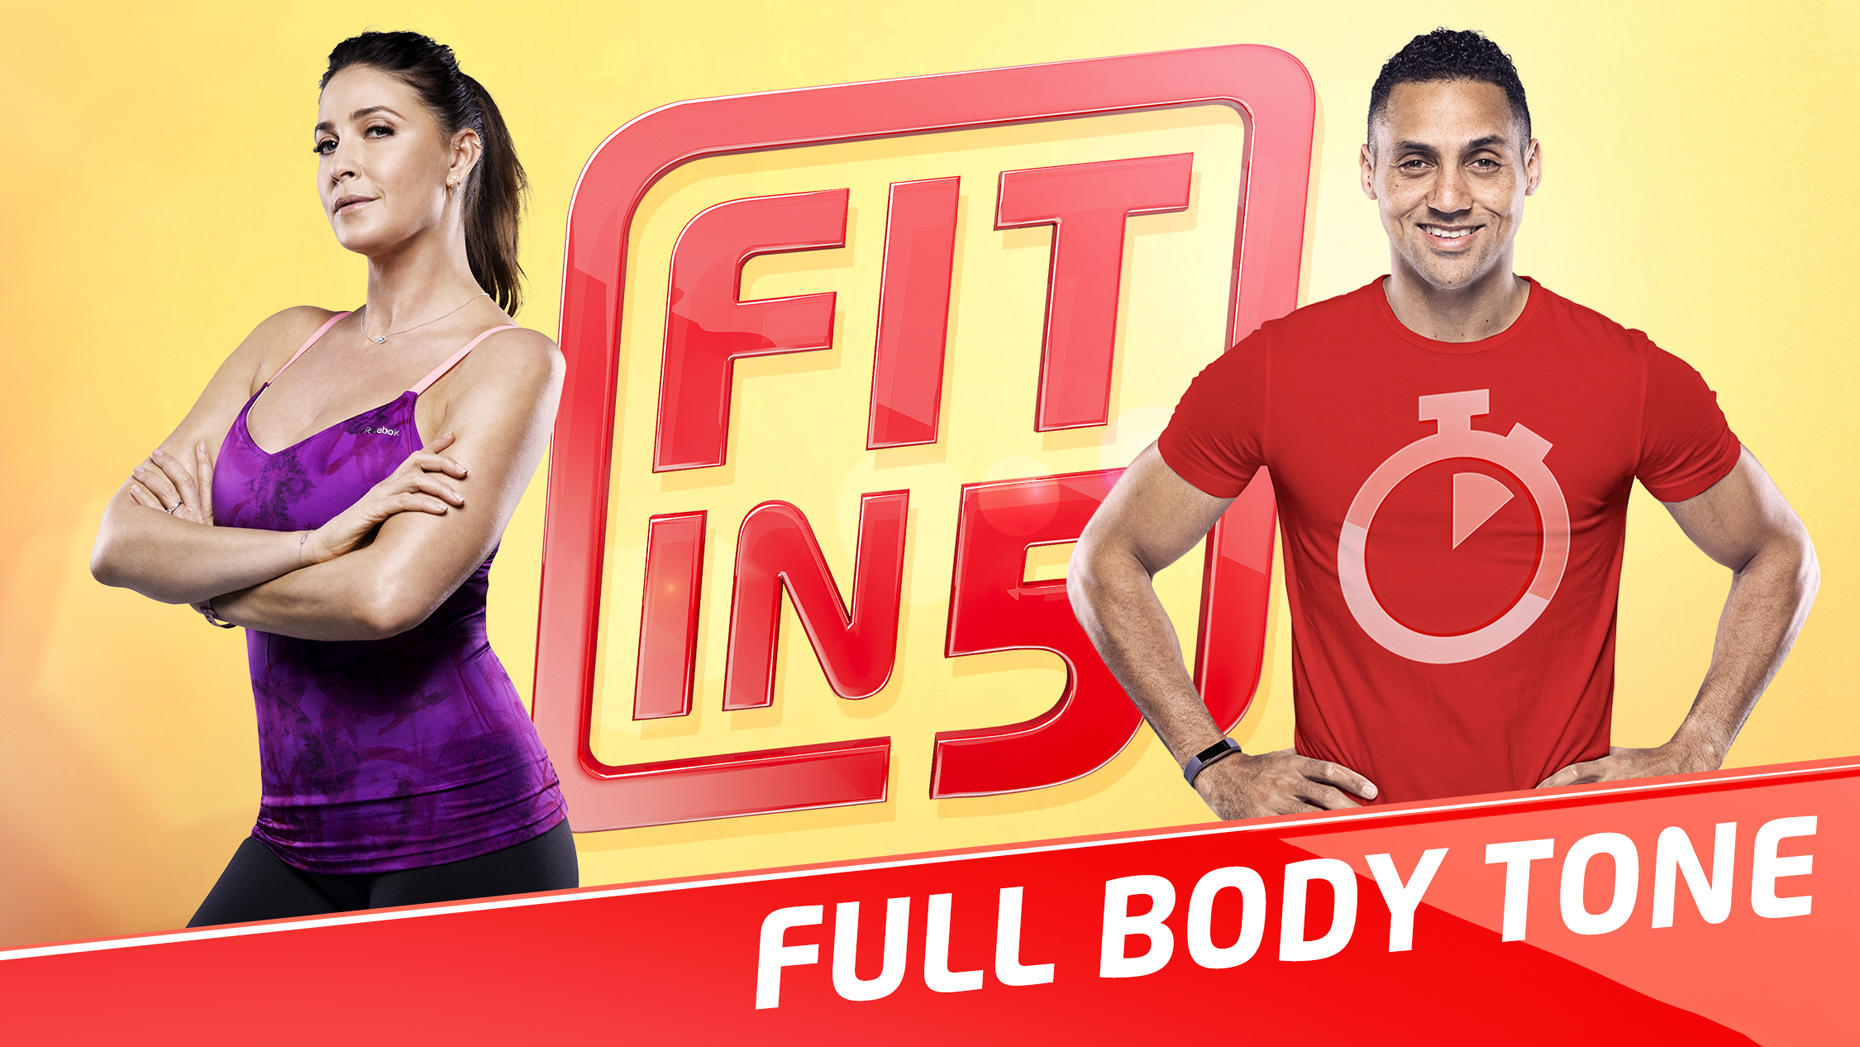 FIT_IN_5__SERIES_2_LANDSCAPE_EP_4_EPG_RED_FULL_BODY_TONE